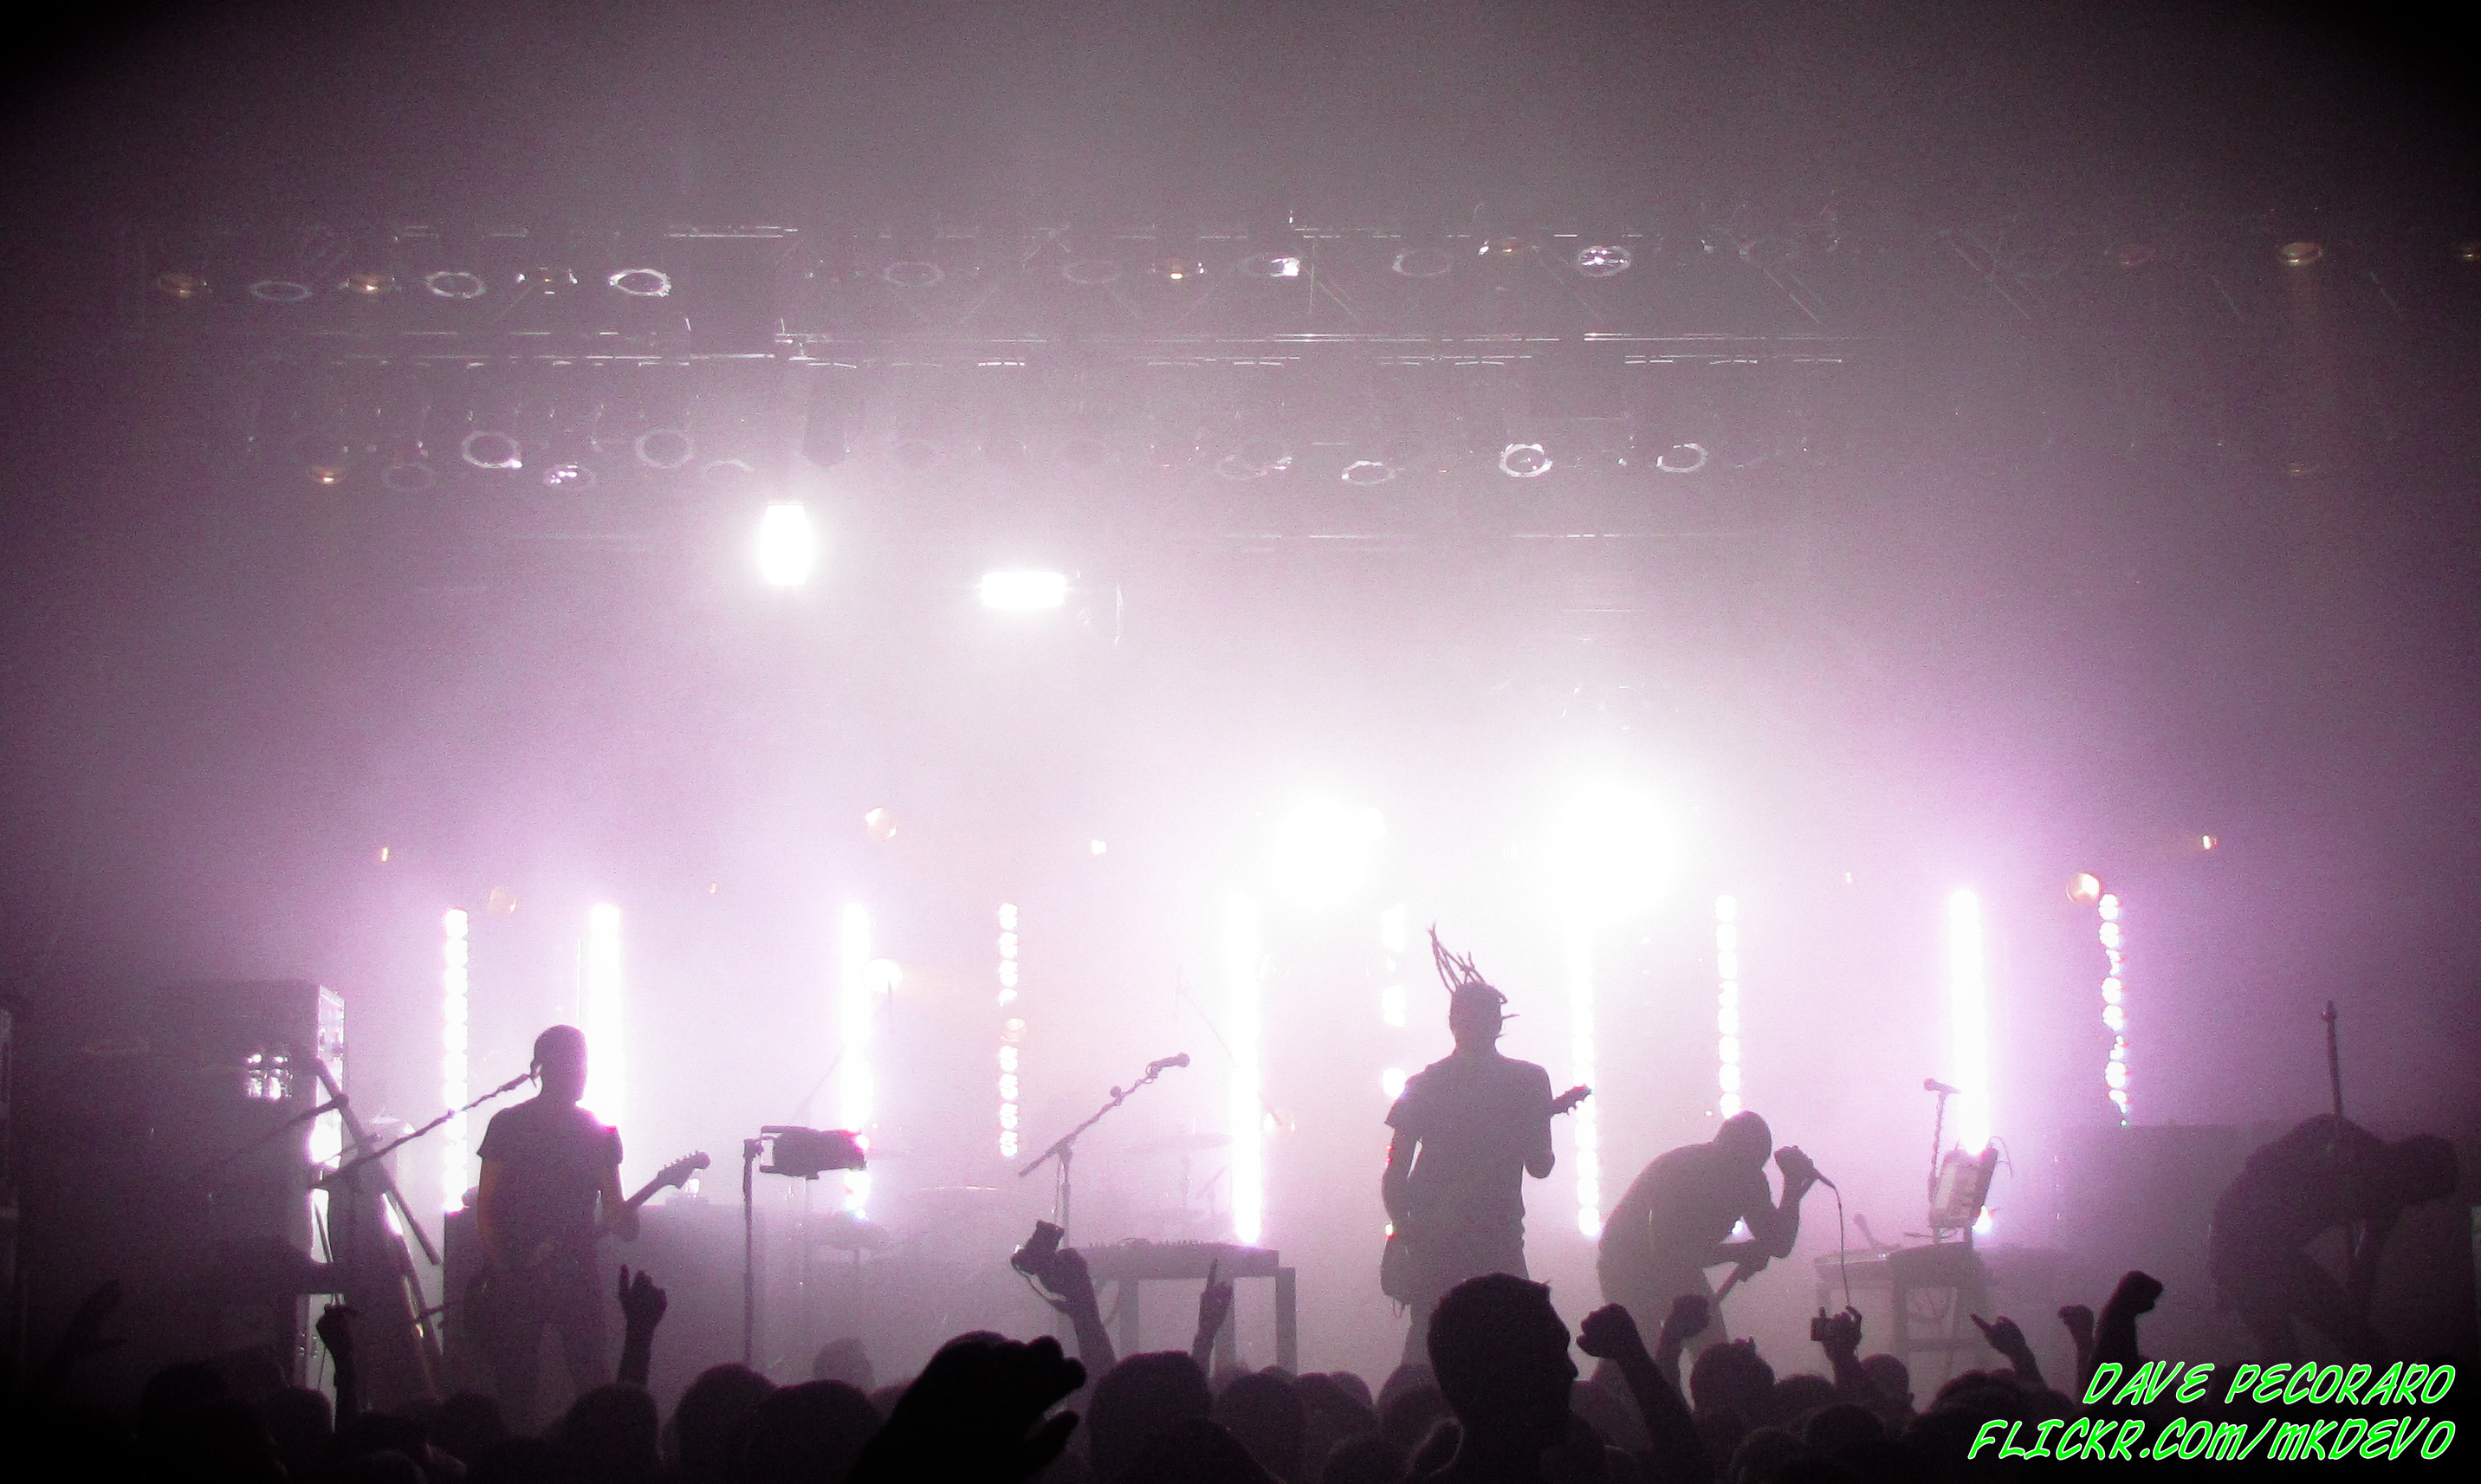 Nine Inch Nails: August 26, 2009 Terminal 5 – Flac and MP3 Downloads ...